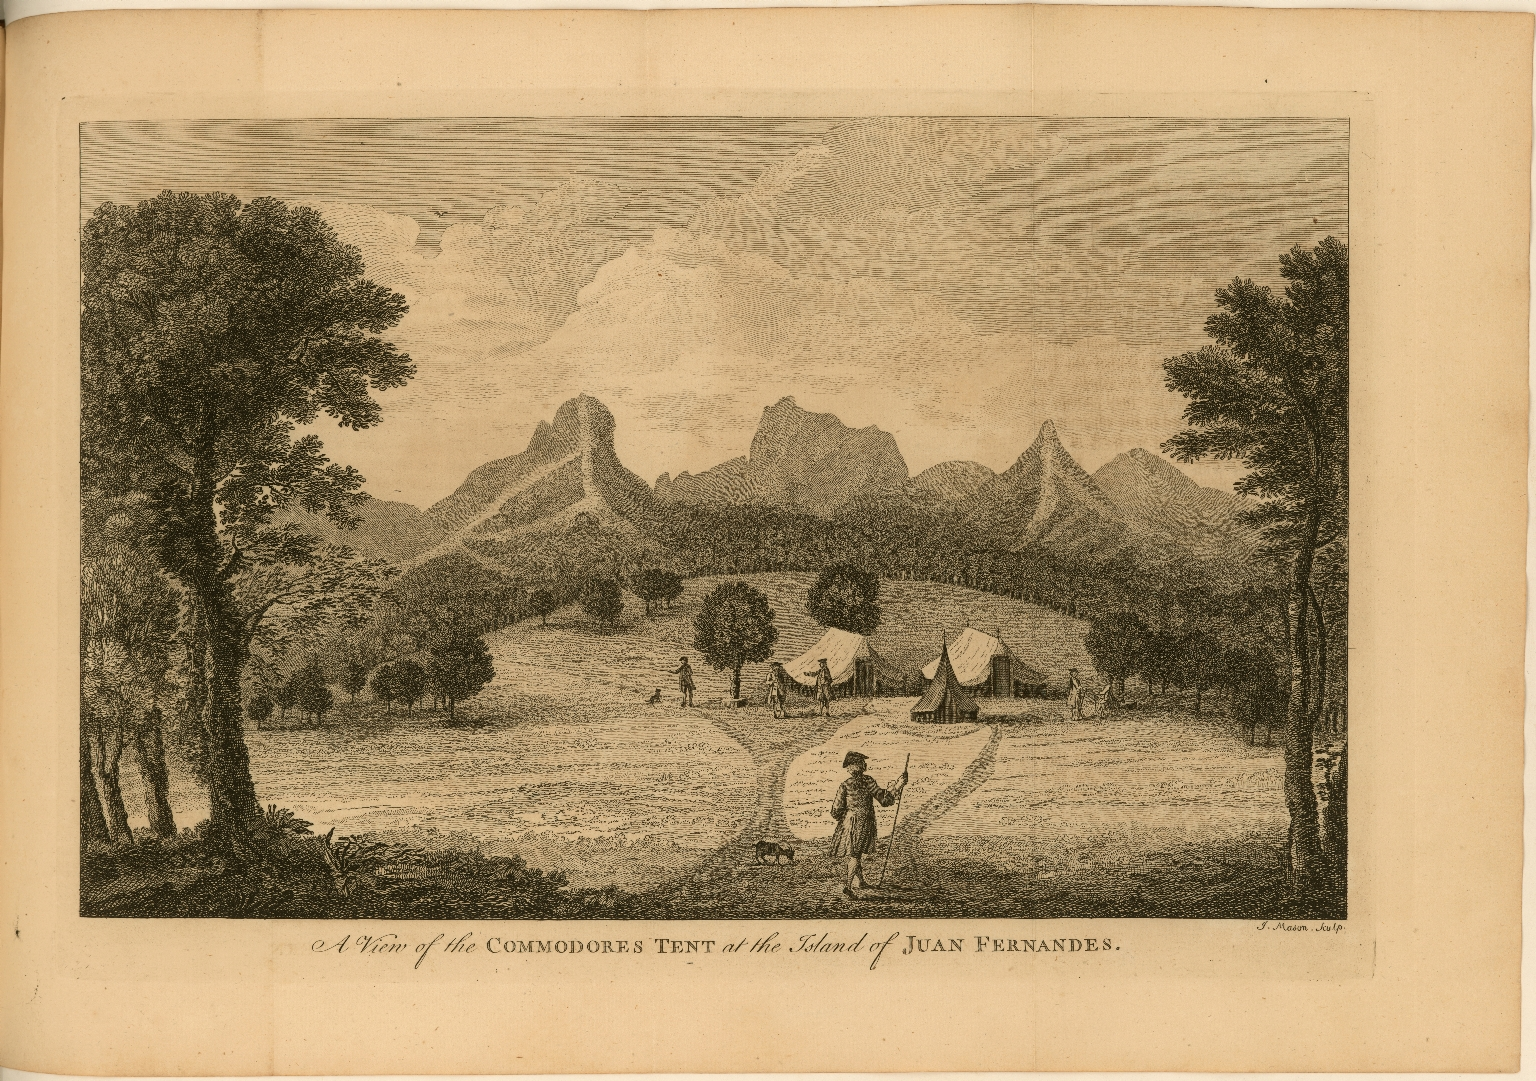 A View of the Commodores Tent at the Island of Juan Fernandes published in A voyage round the world, in the years MDCCXL, I, II, III, IV. By George Anson